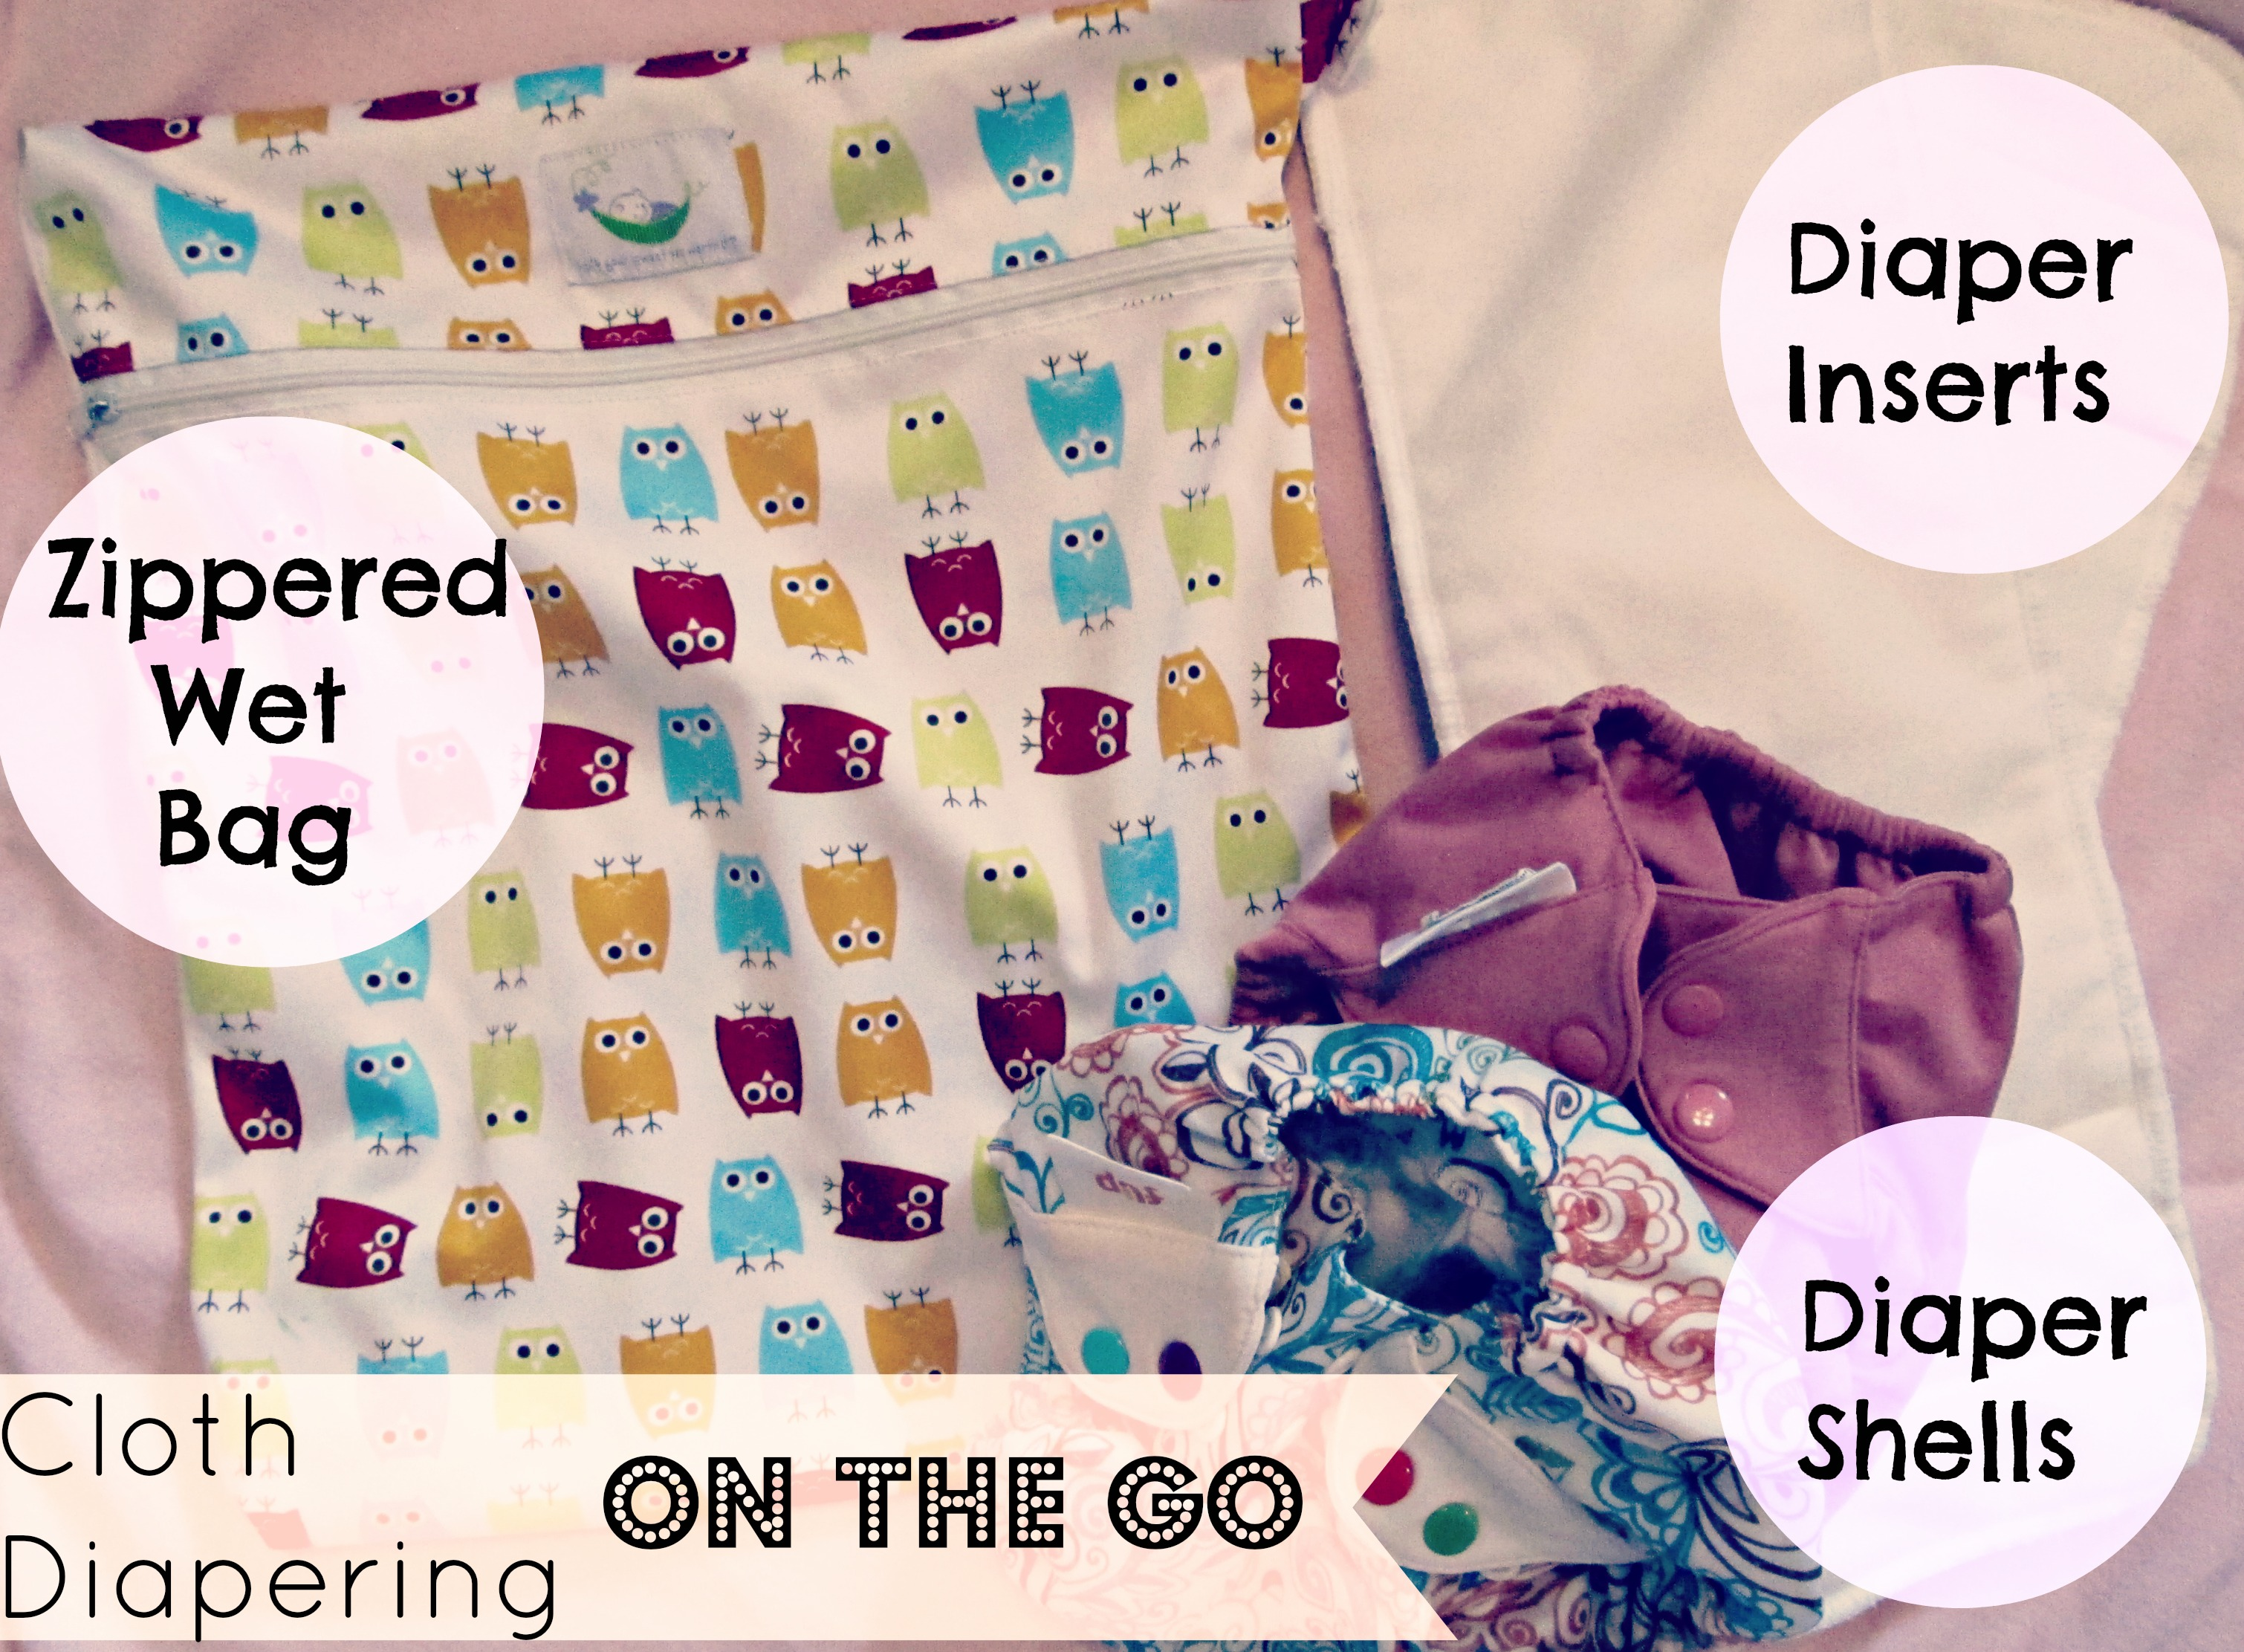 Cloth Diapering On the Go